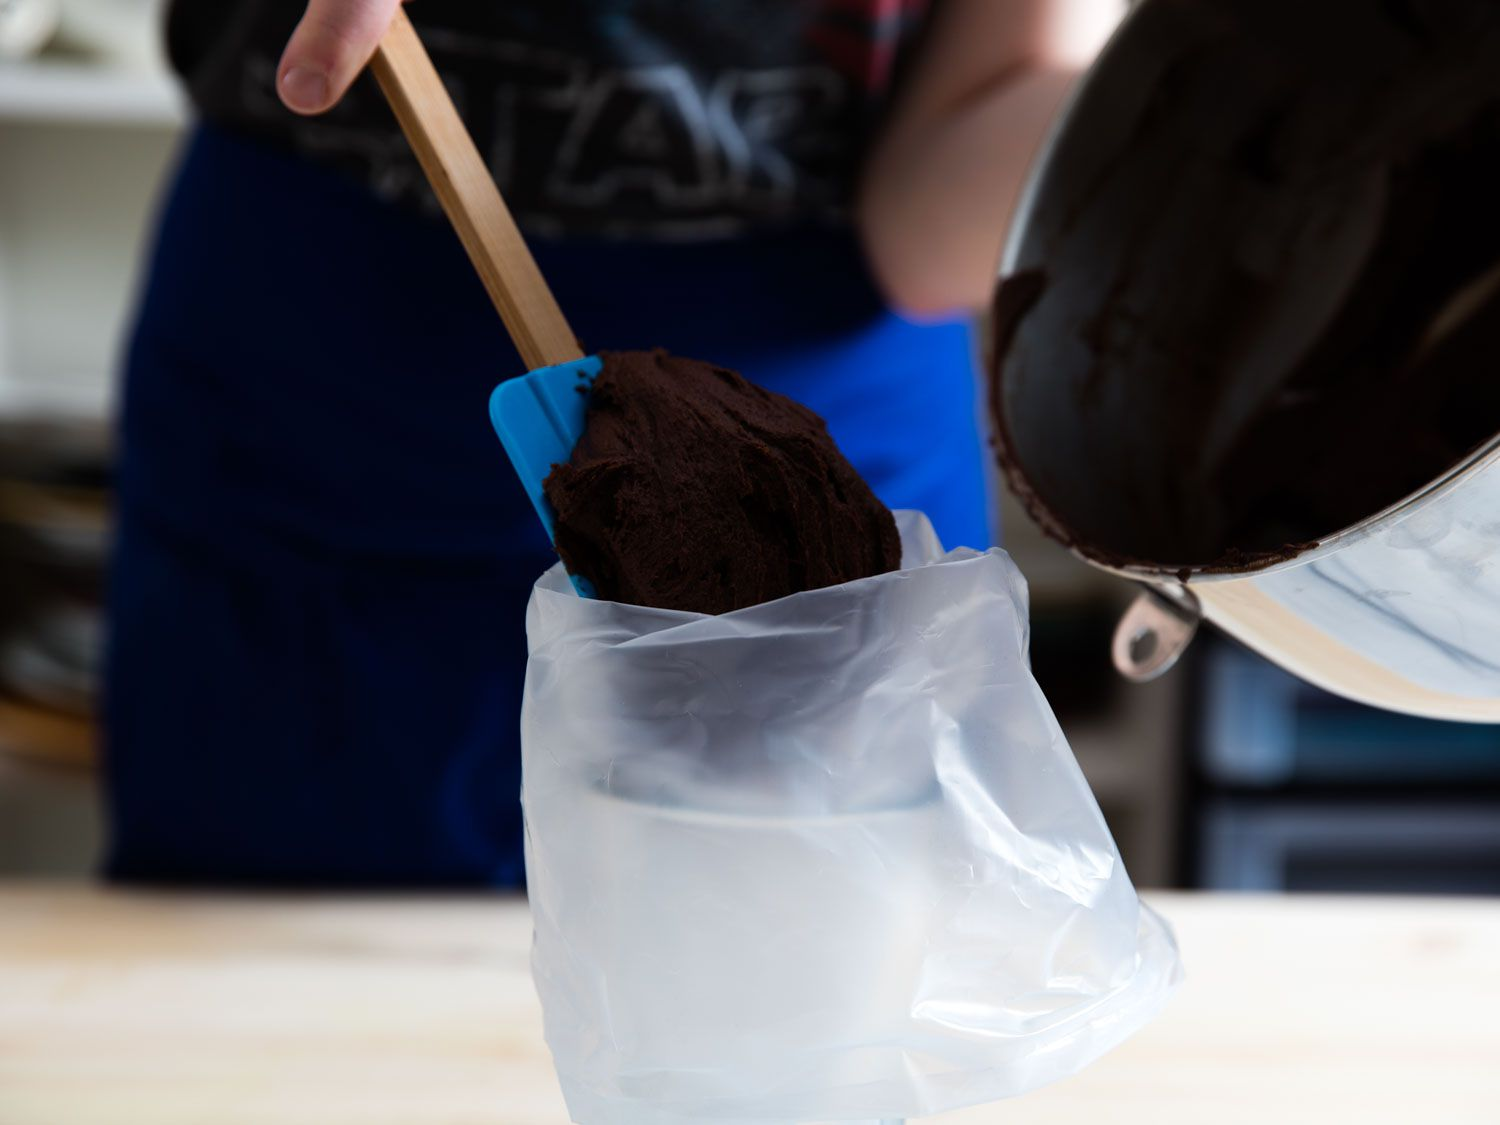 filling piping bag with chocolate